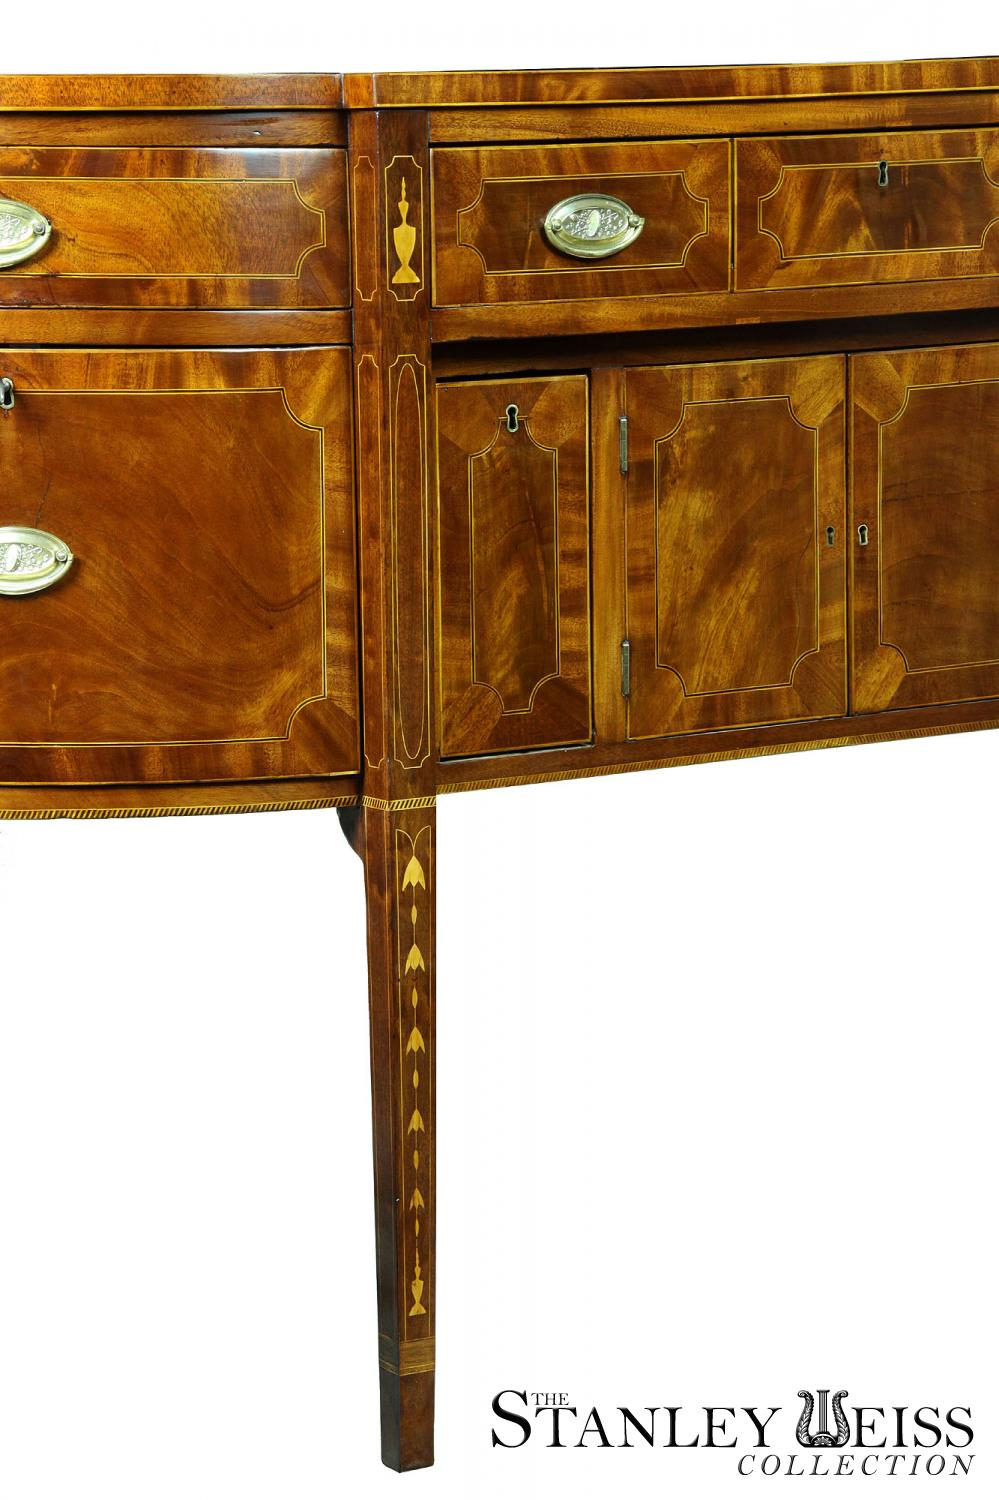 An Inlaid Mahogany Hepplewhite Sideboard with Bellflower and Urn ...